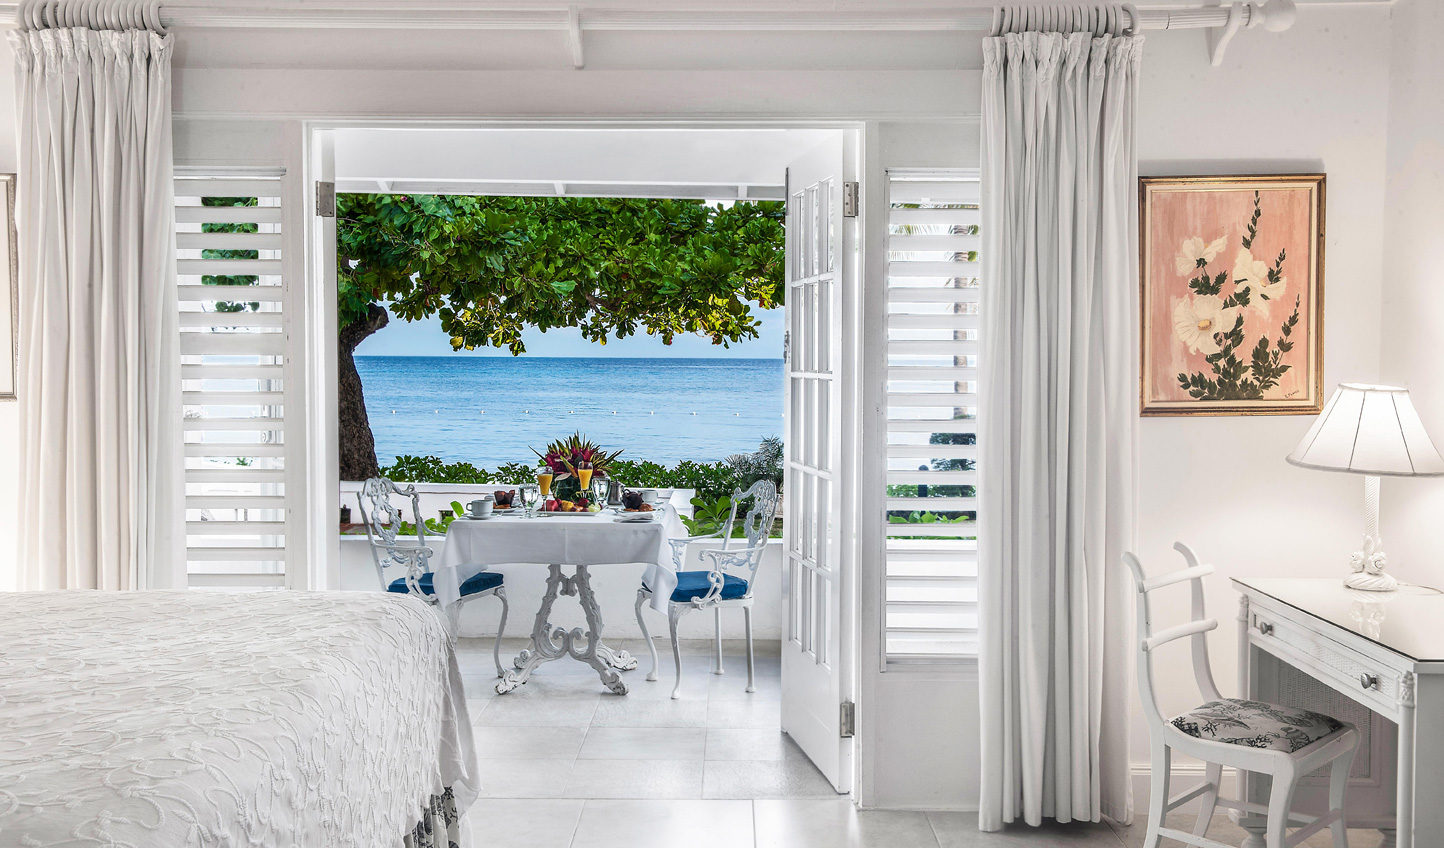 Step from your suite onto the terrace and enjoy views of the Ocean